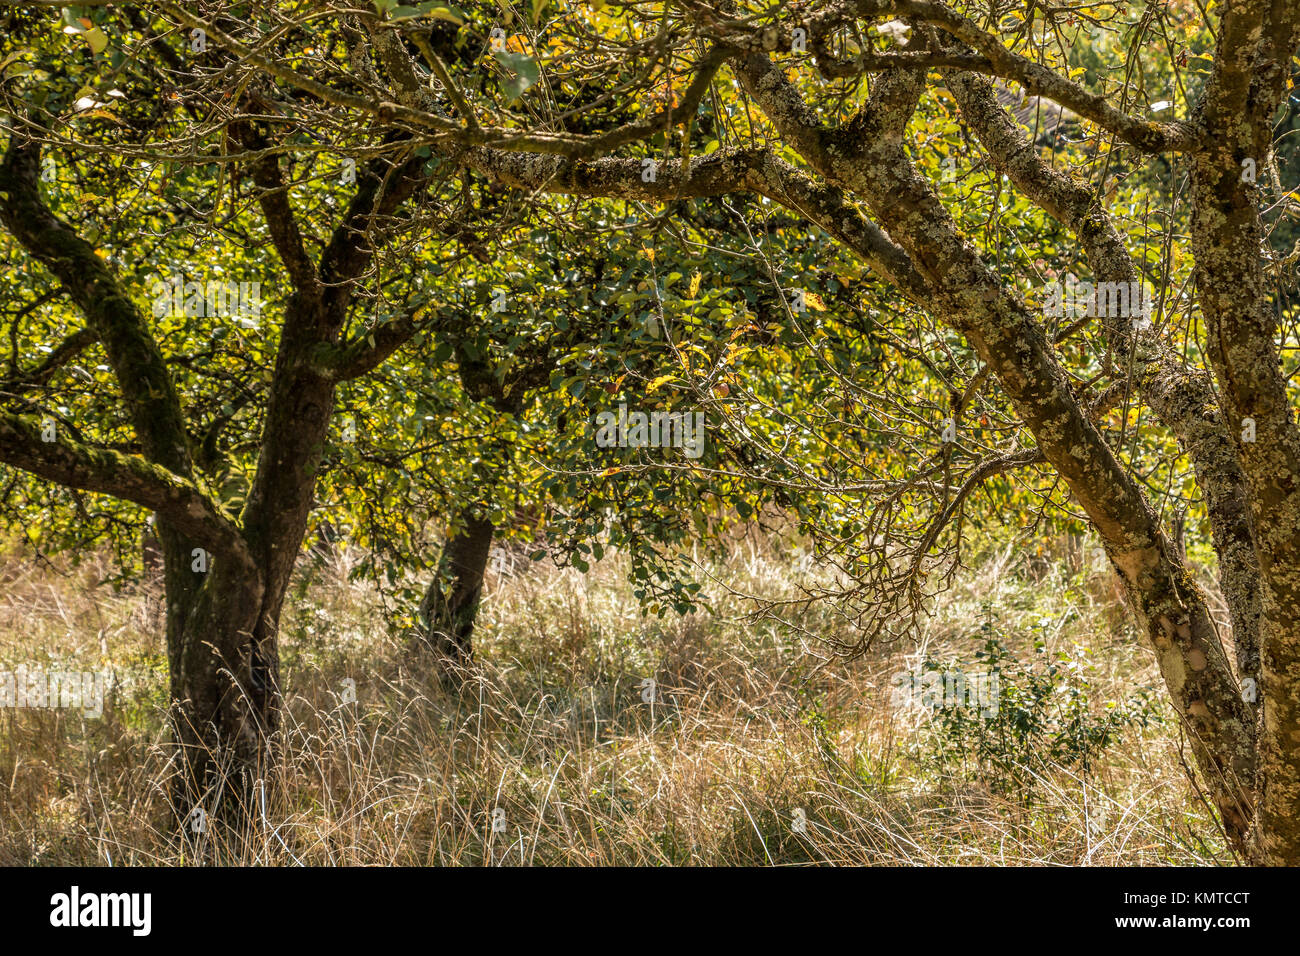 Wilderness in the garden with old apple trees and long dry grass - Stock Image